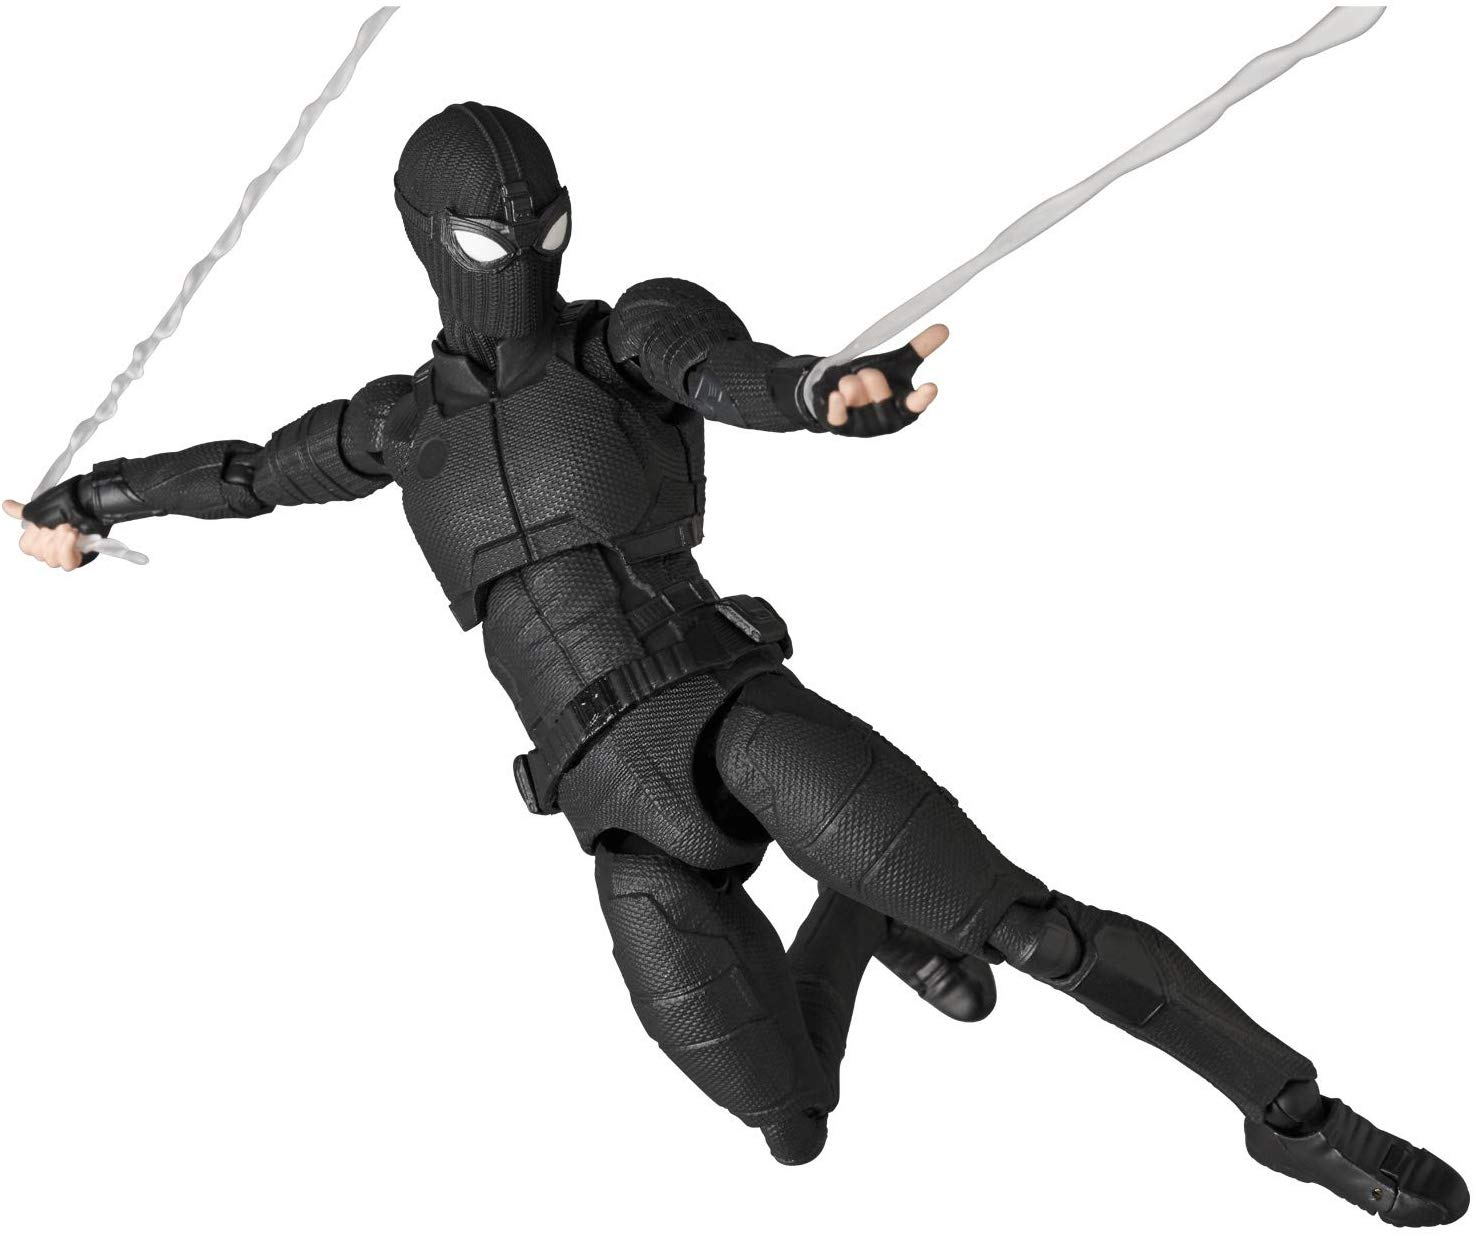 MAFEX-Stealth-Suit-Spider-Man-005